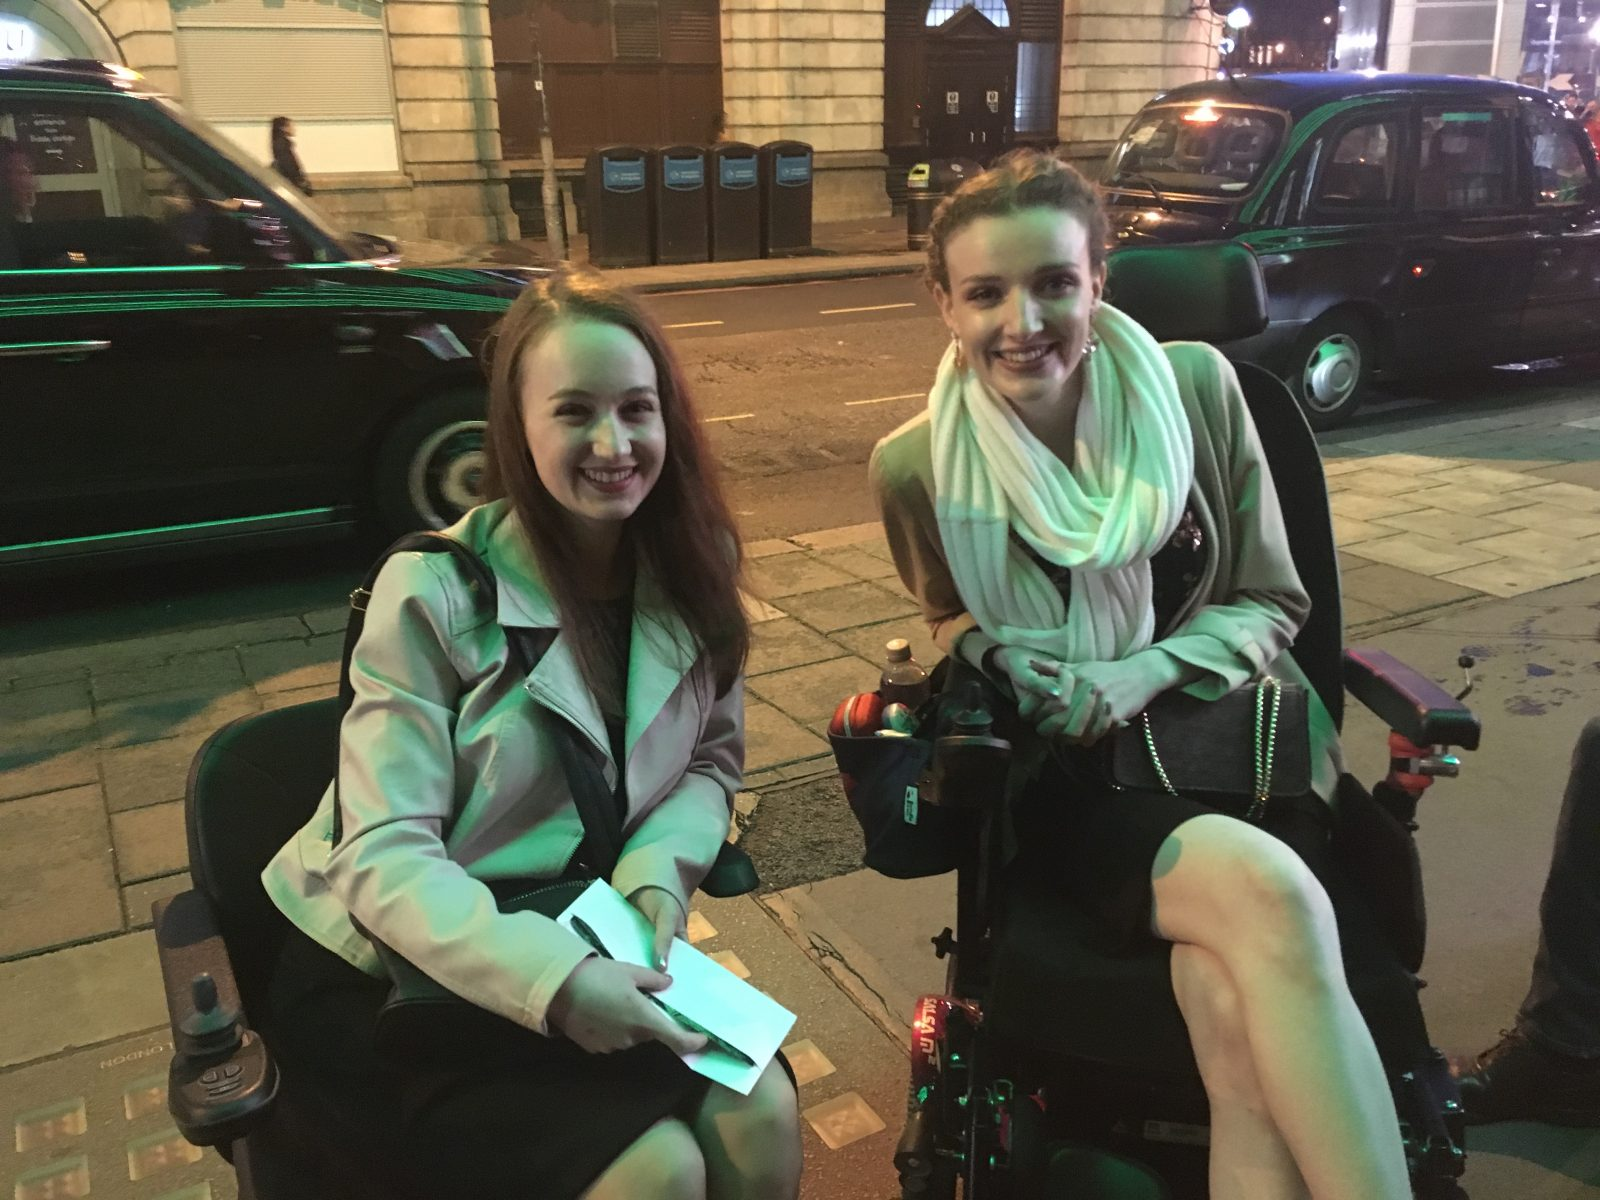 pippa and kate both sat in powerchairs and smiling, outdoors